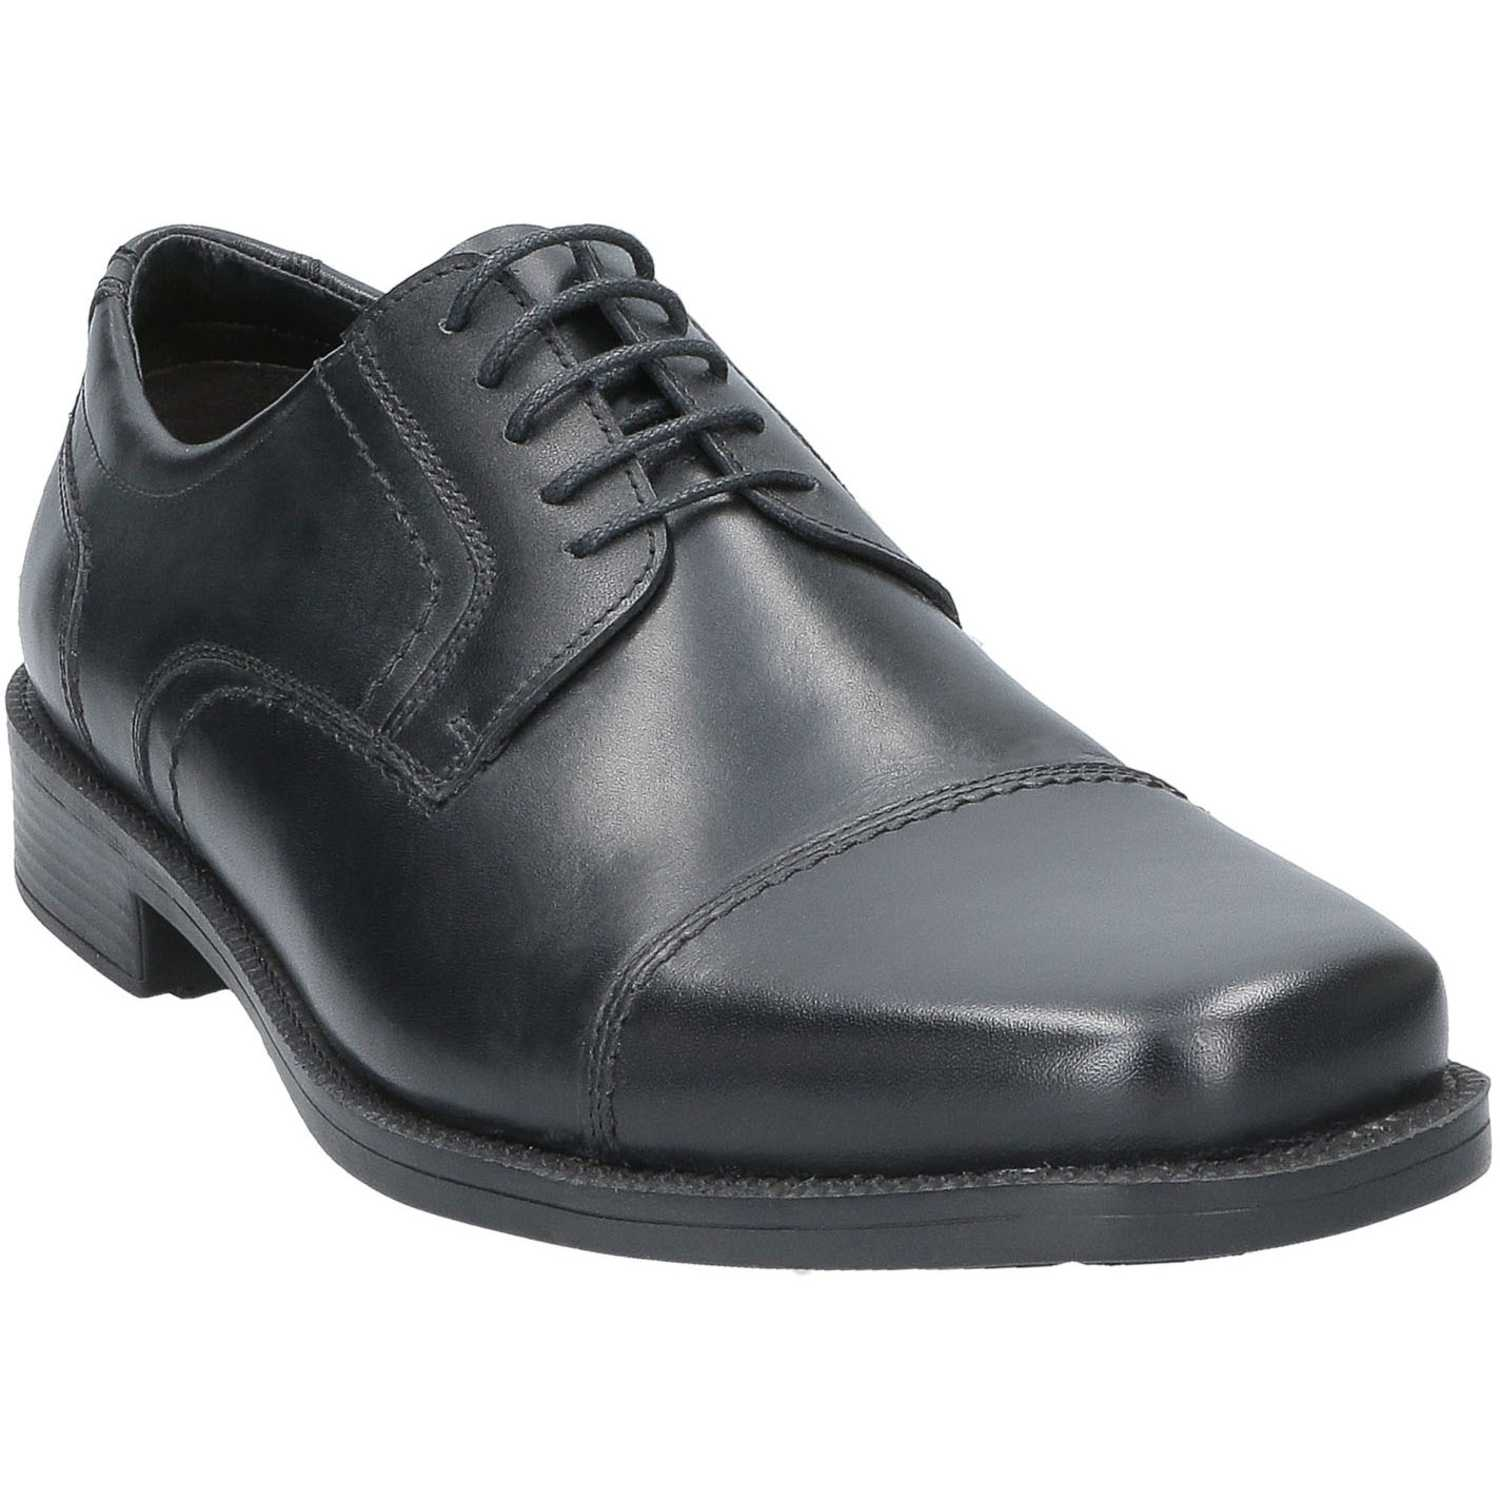 GUANTE Aspen Negro Oxfords